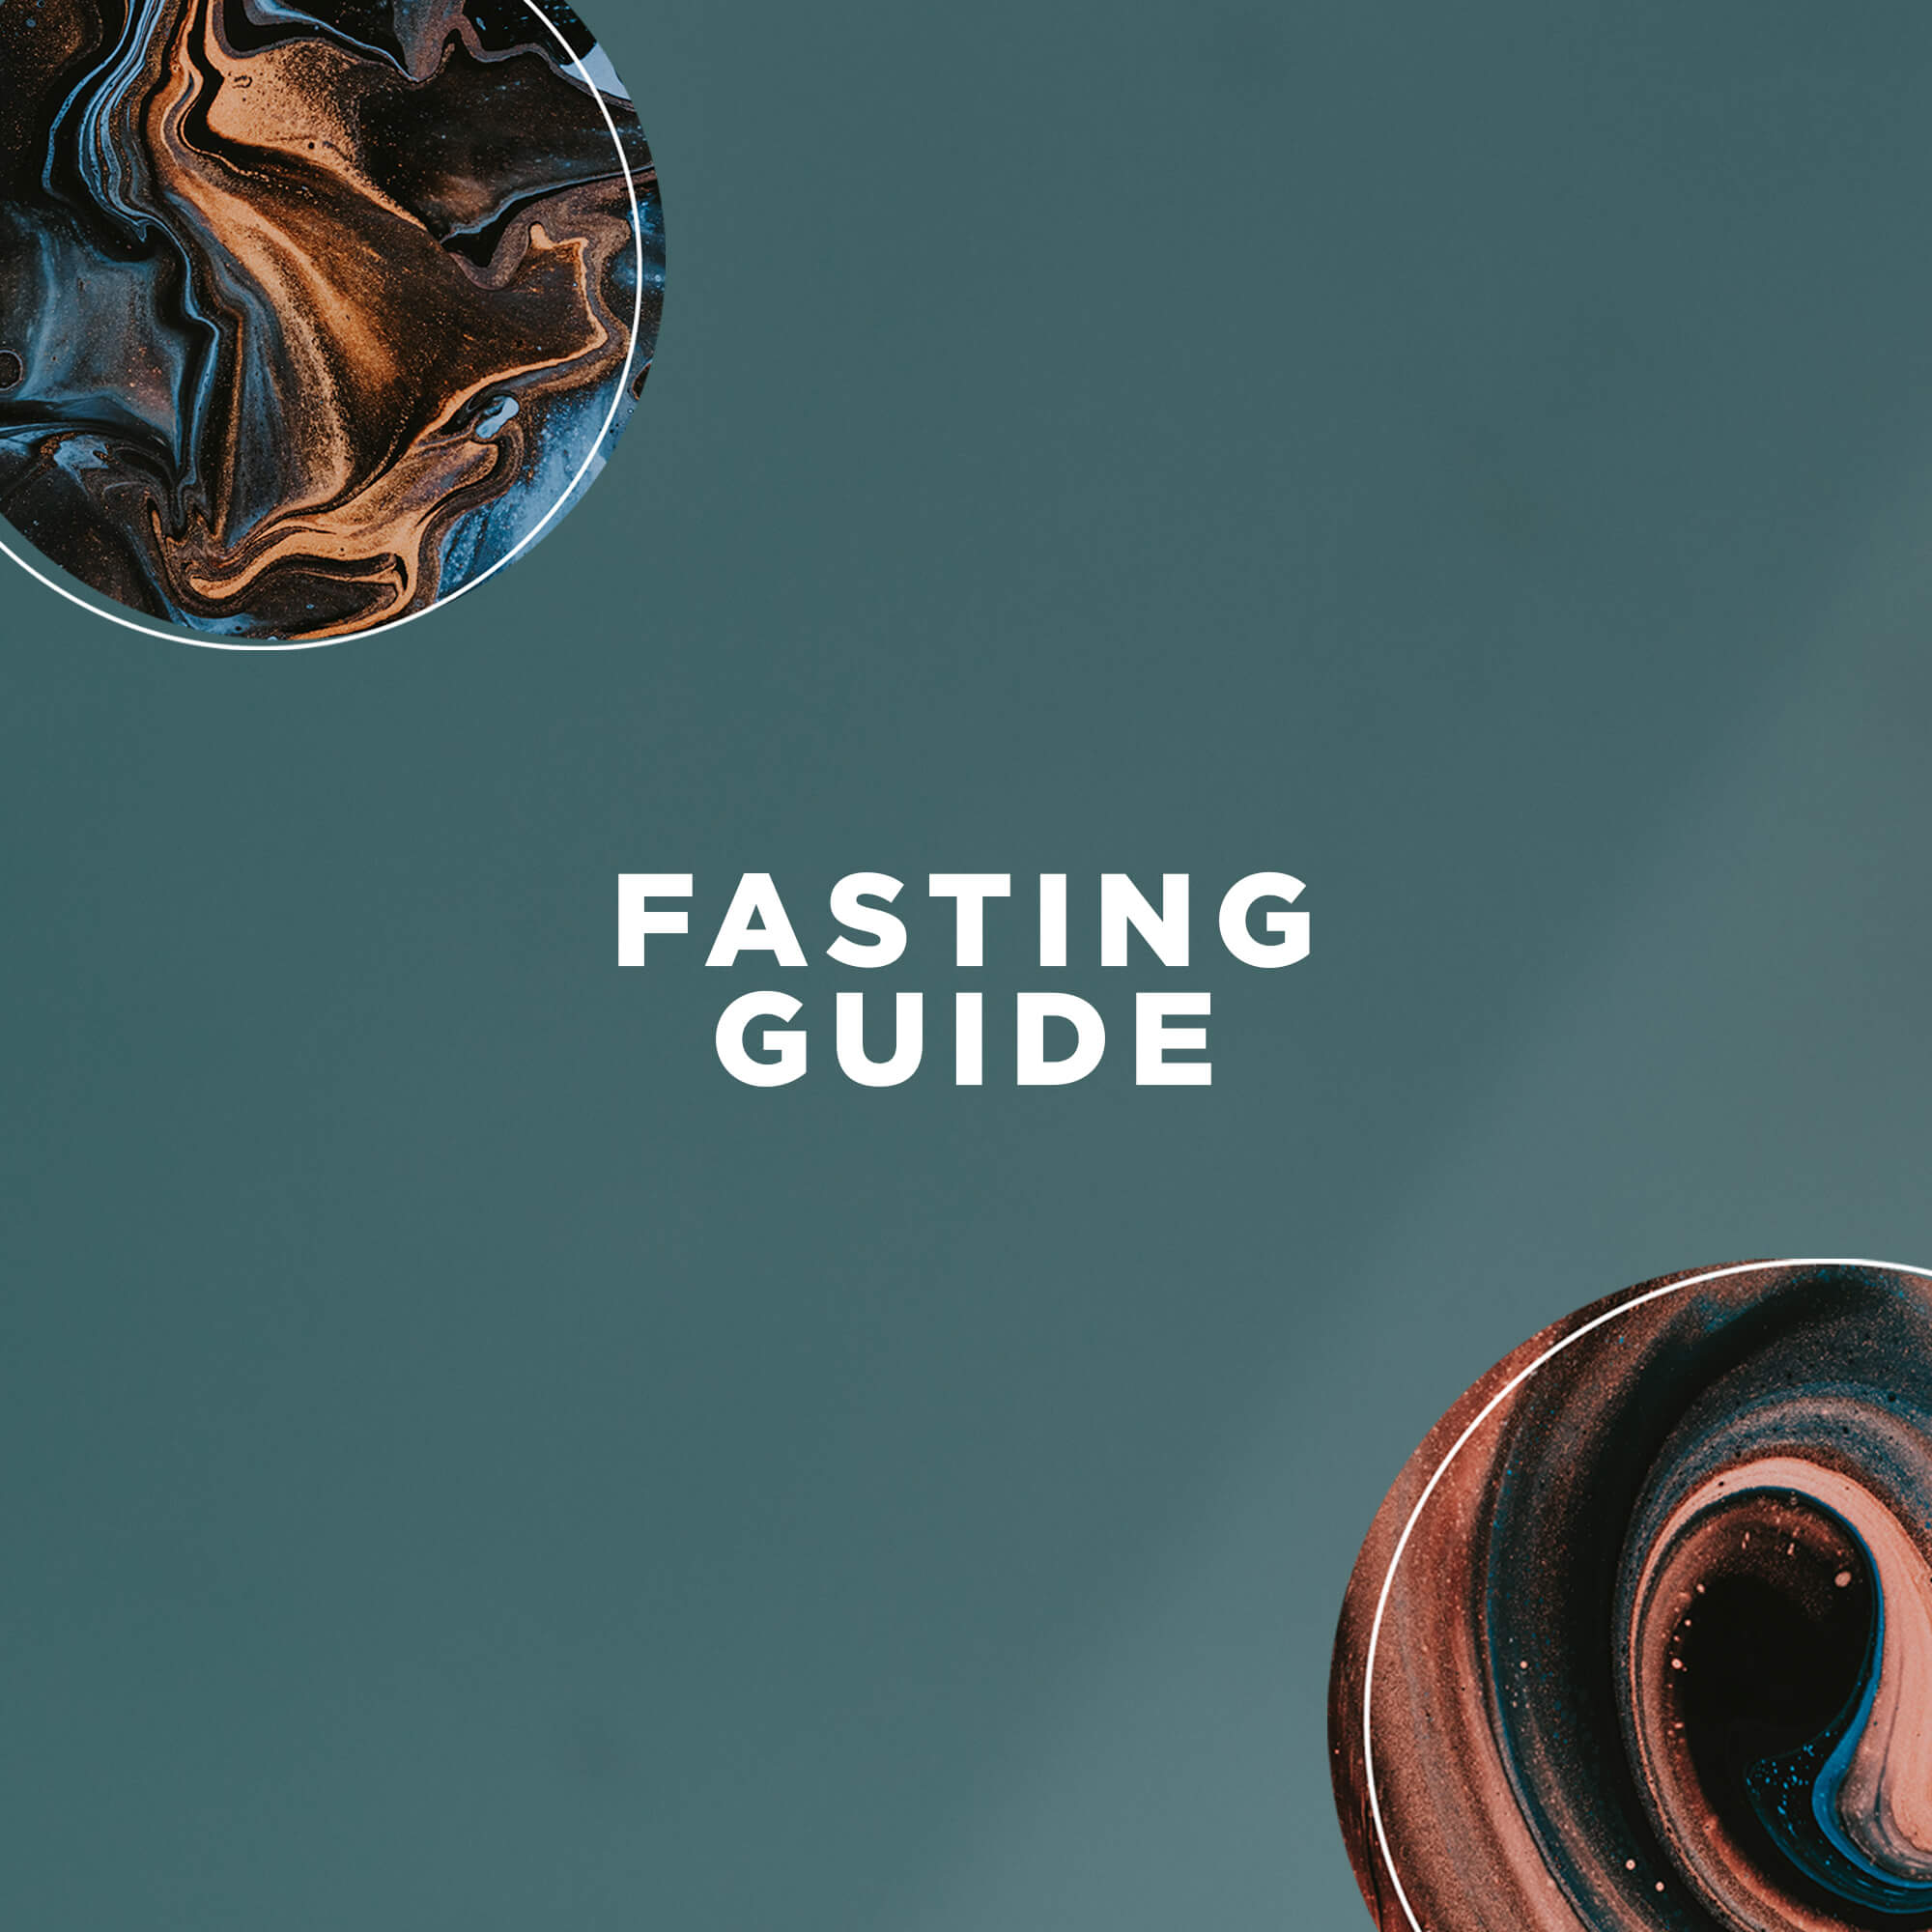 21 Days of Prayer and Fasting 24